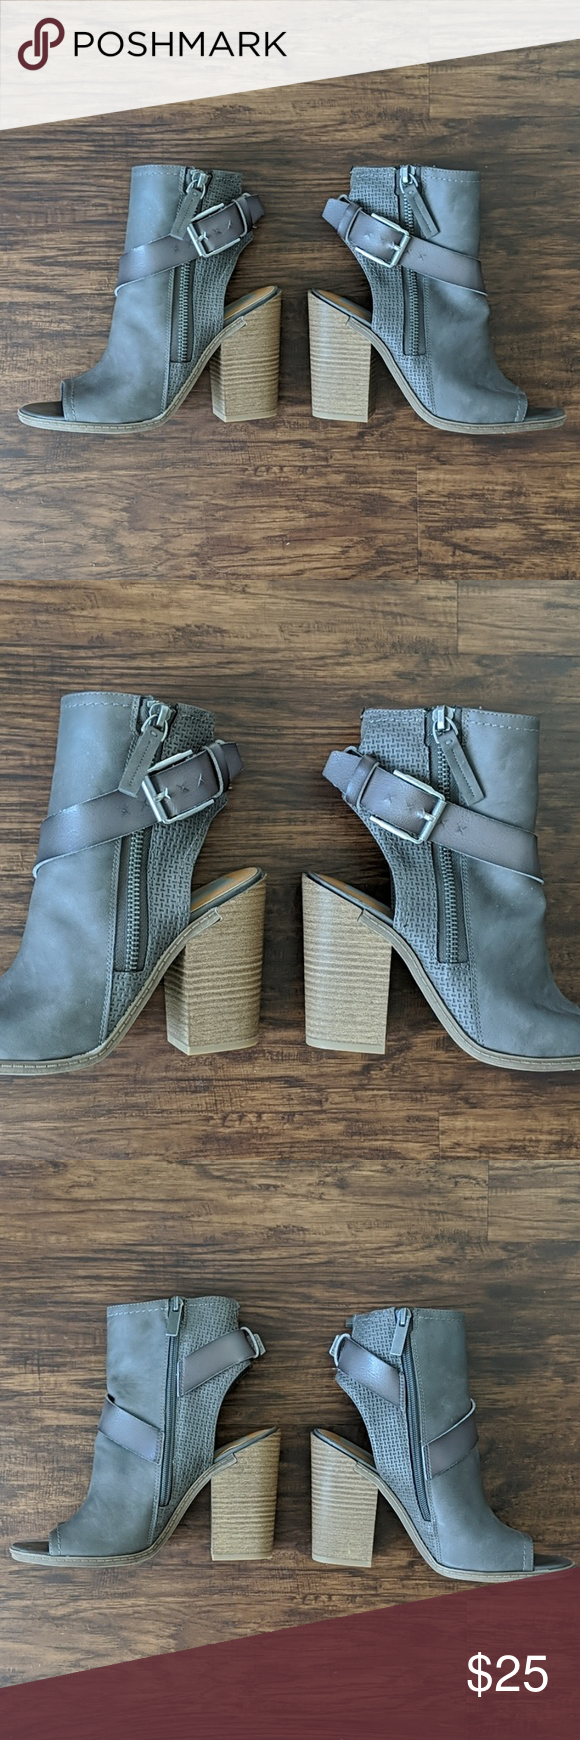 Dolce Vita Peep Toe Buckle Ankle Boots New Without Box Dolce Vita Peep Toe Buckle Ankle Boots  Fun ankle boots to wear with skinny jeans, flared jeans, and dresses! Great buckle detail with gunmetal silver hardware.  Heel height measures 4 inches. Dolce Vita Shoes Ankle Boots & Booties #skinnyjeansandankleboots